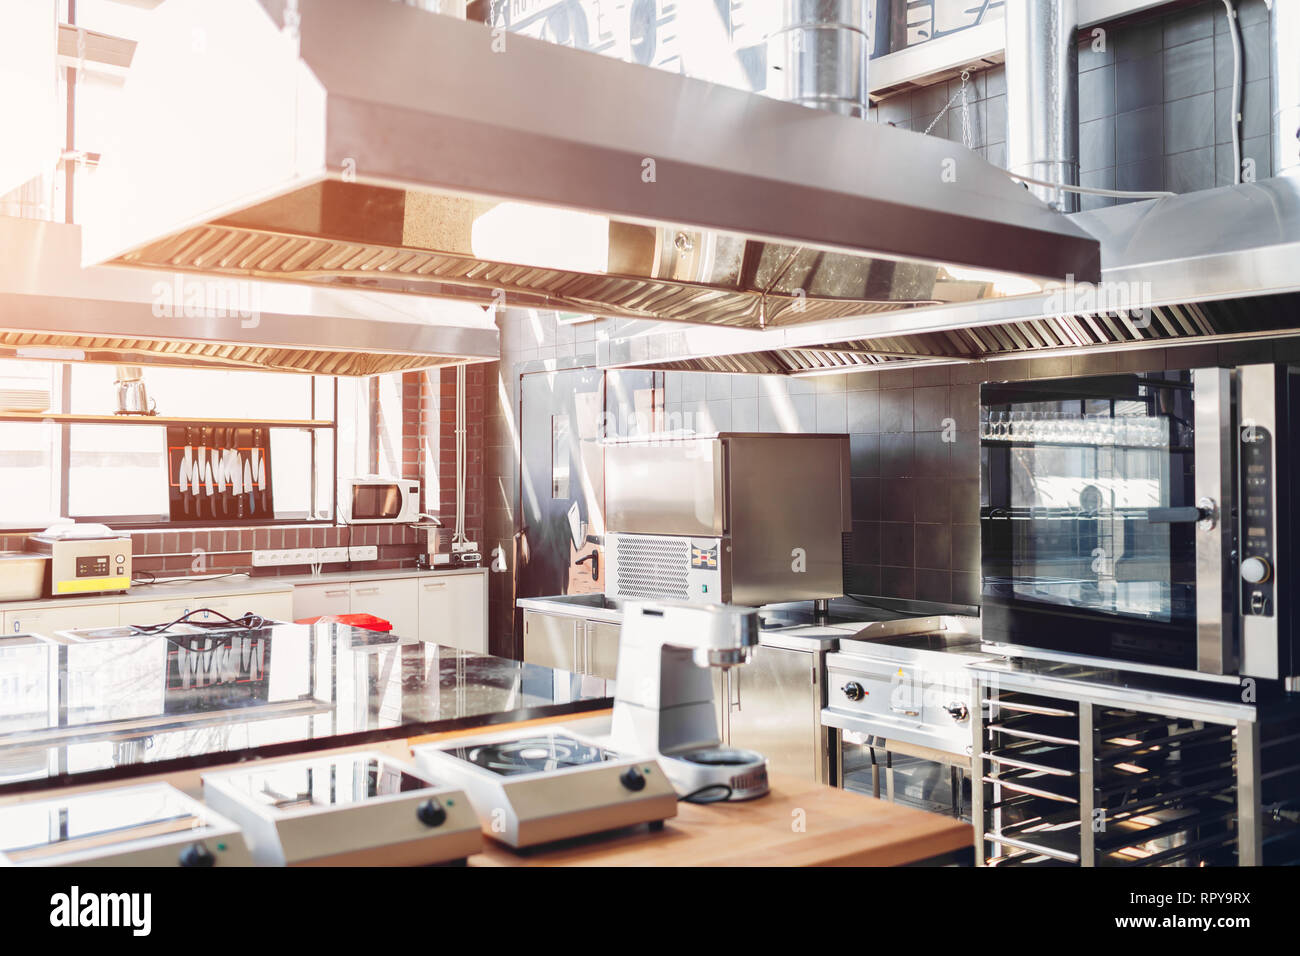 Professional Kitchen Interior Of Restaurant Modern Equipment And Devices Made Of Stainless Steel Empty Kitchen In The Morning Stock Photo Alamy